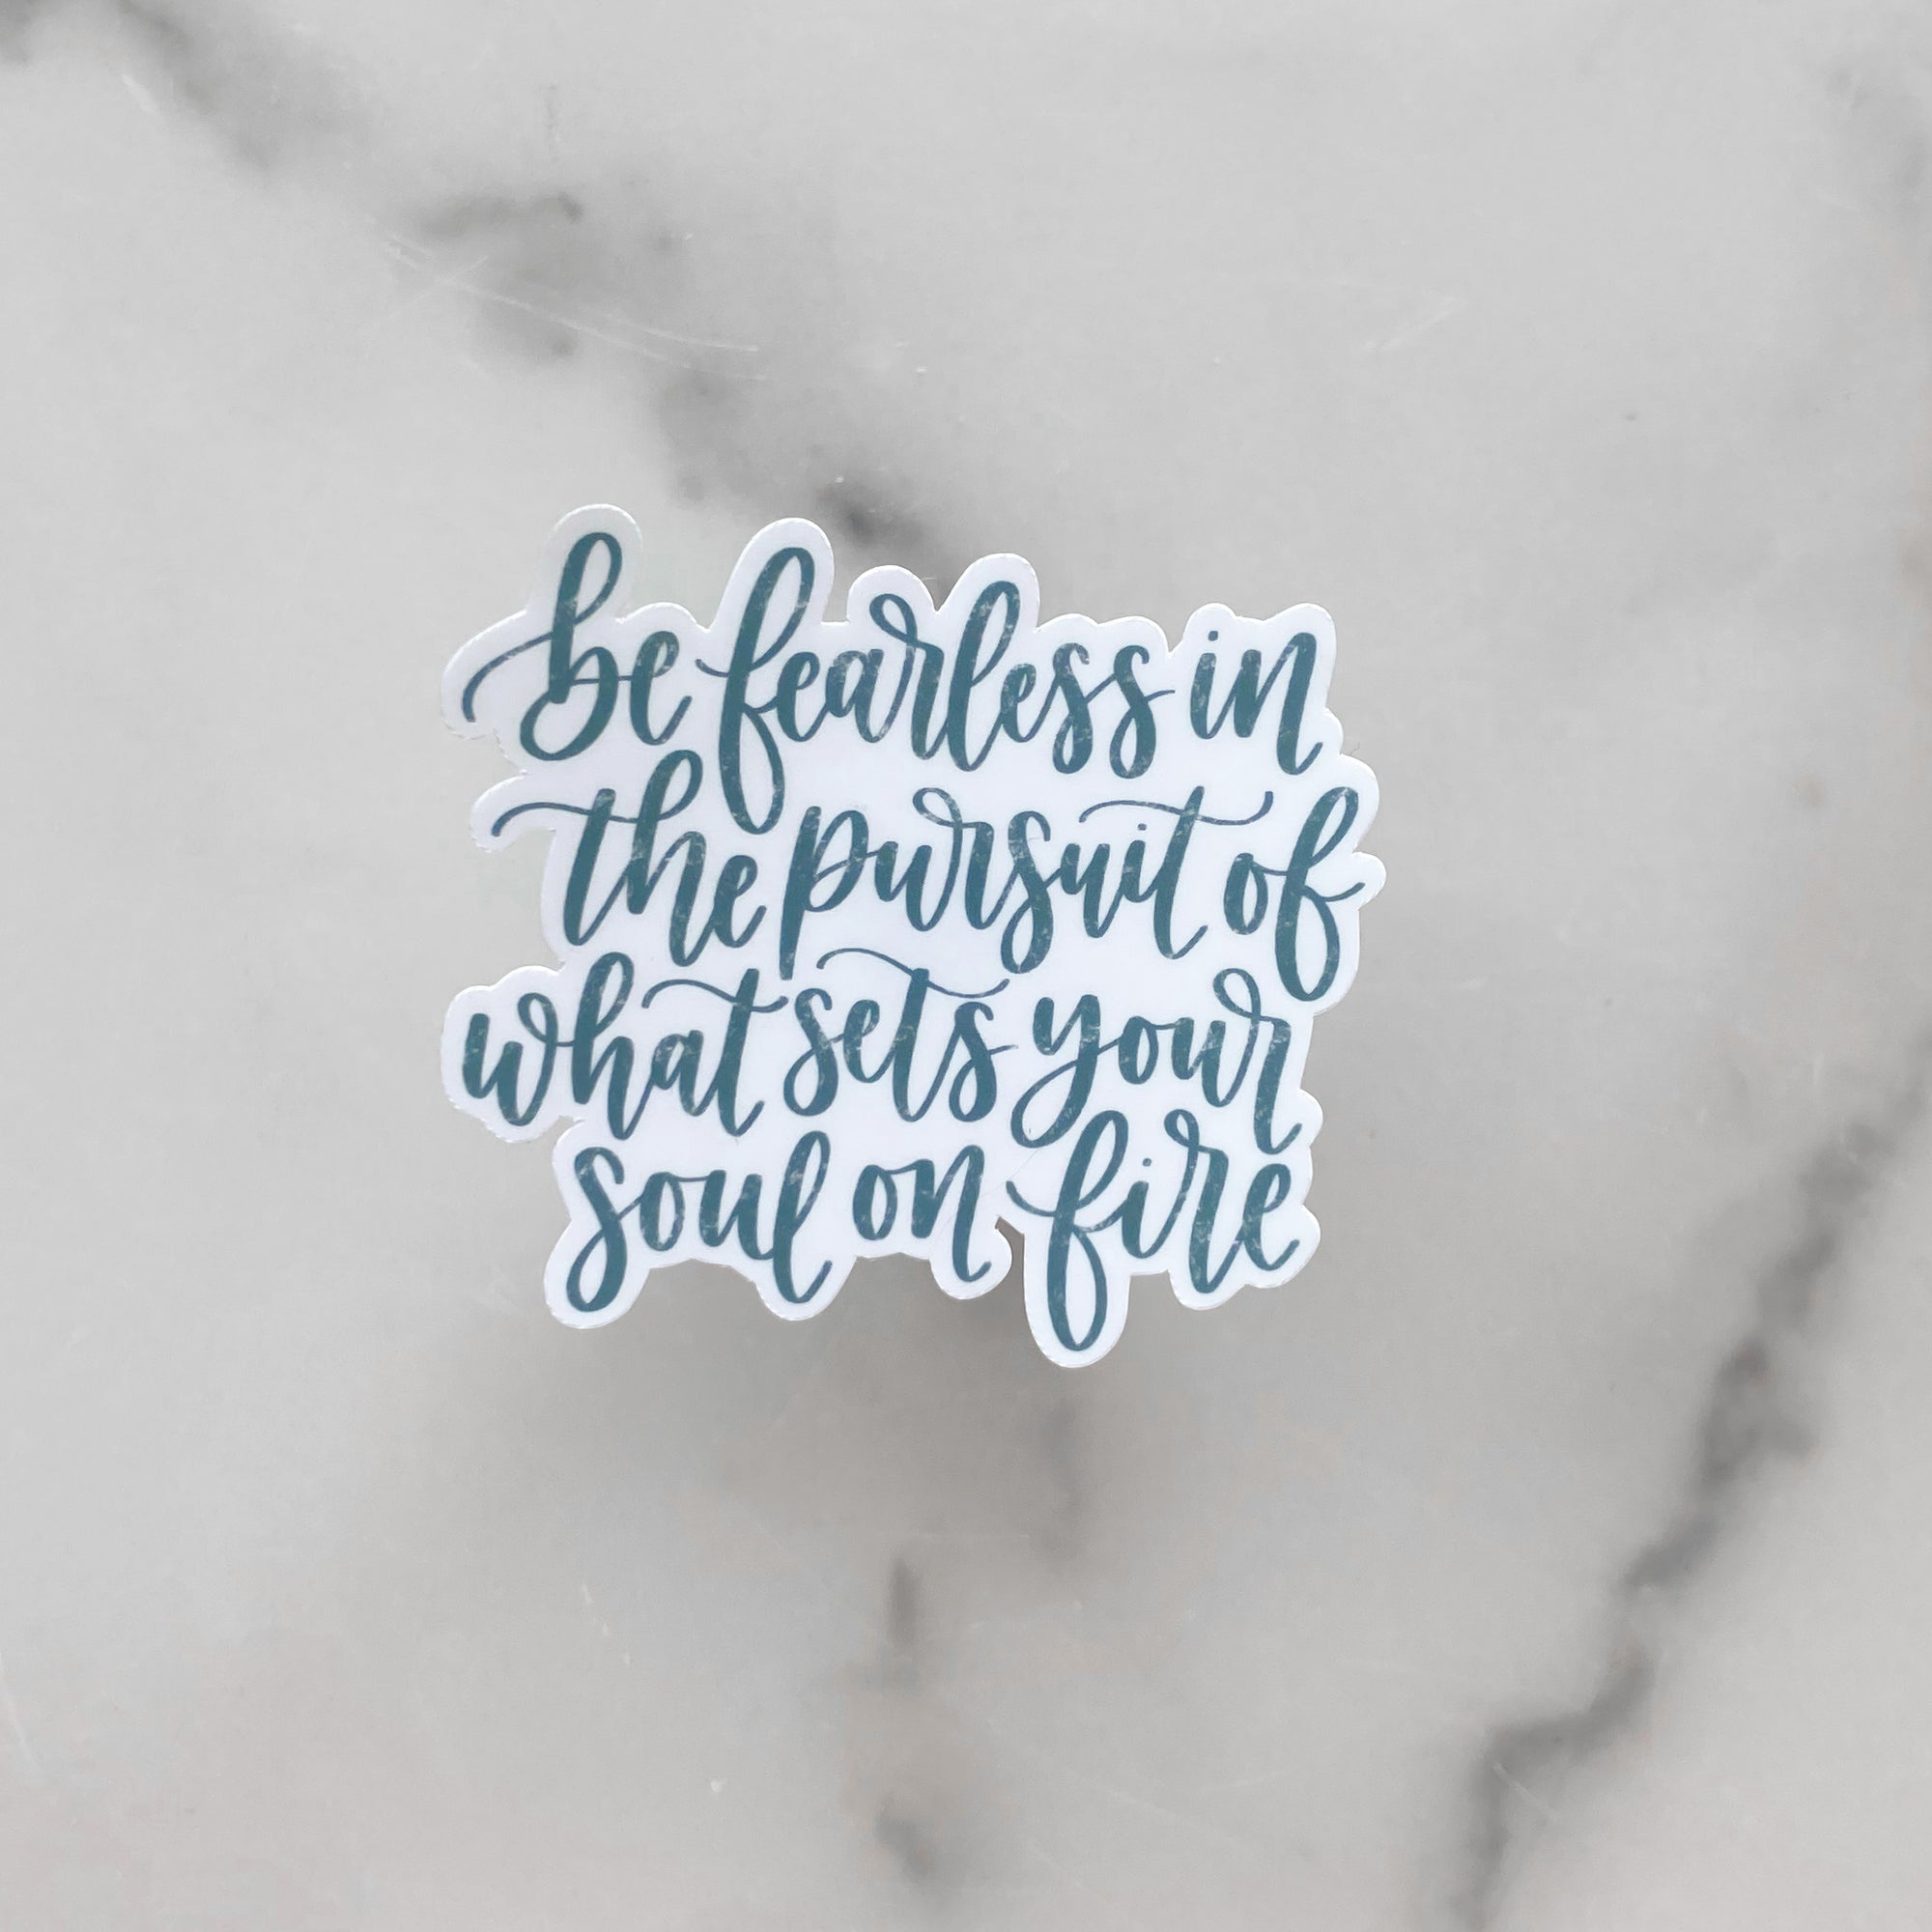 Be Fearless In The Pursuit Of What Sets Your Soul On Fire | Waterproof Sticker